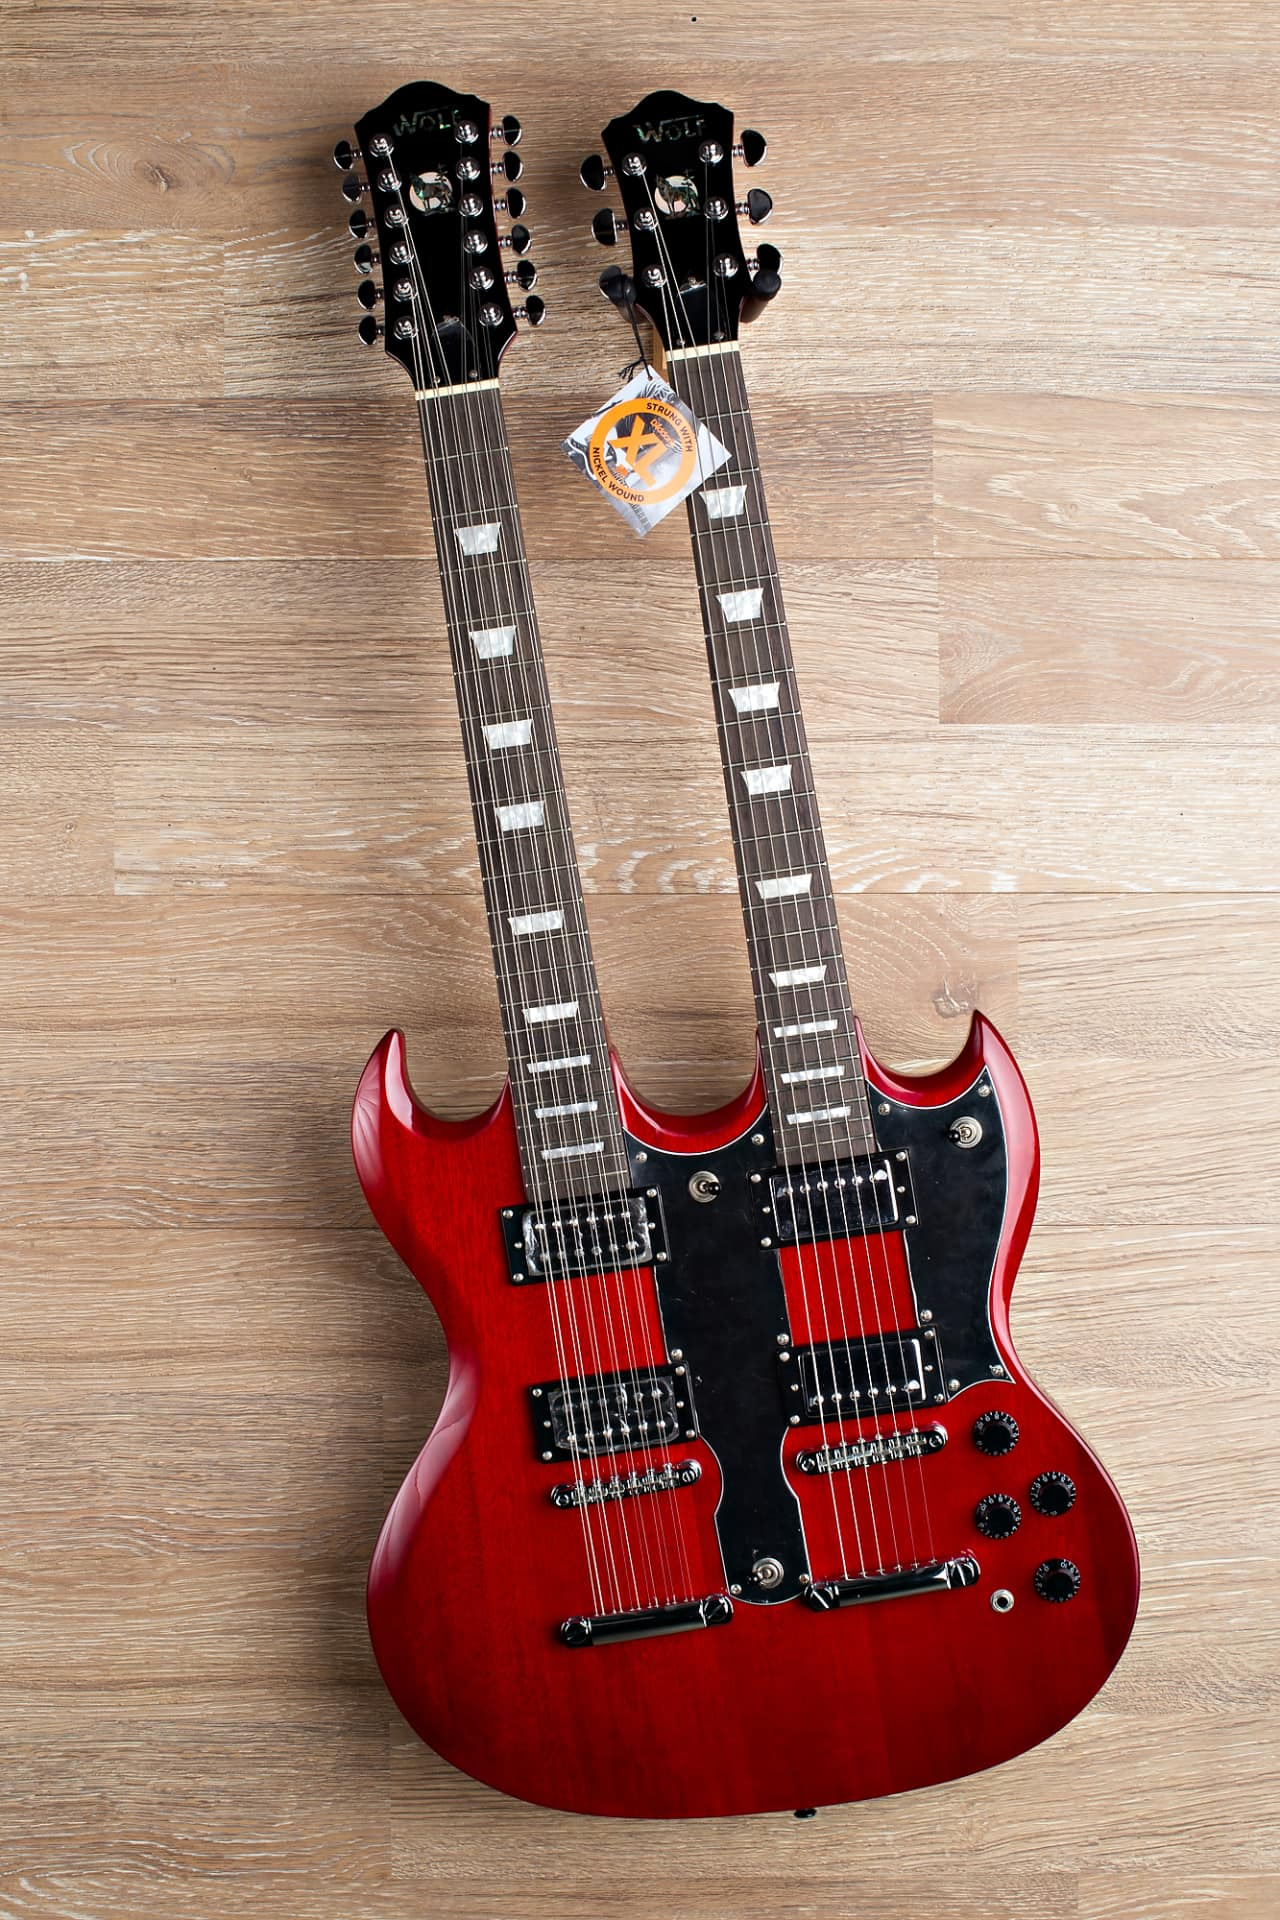 wolf double neck wsg electric guitar trans red 2017 2 8 reverb. Black Bedroom Furniture Sets. Home Design Ideas